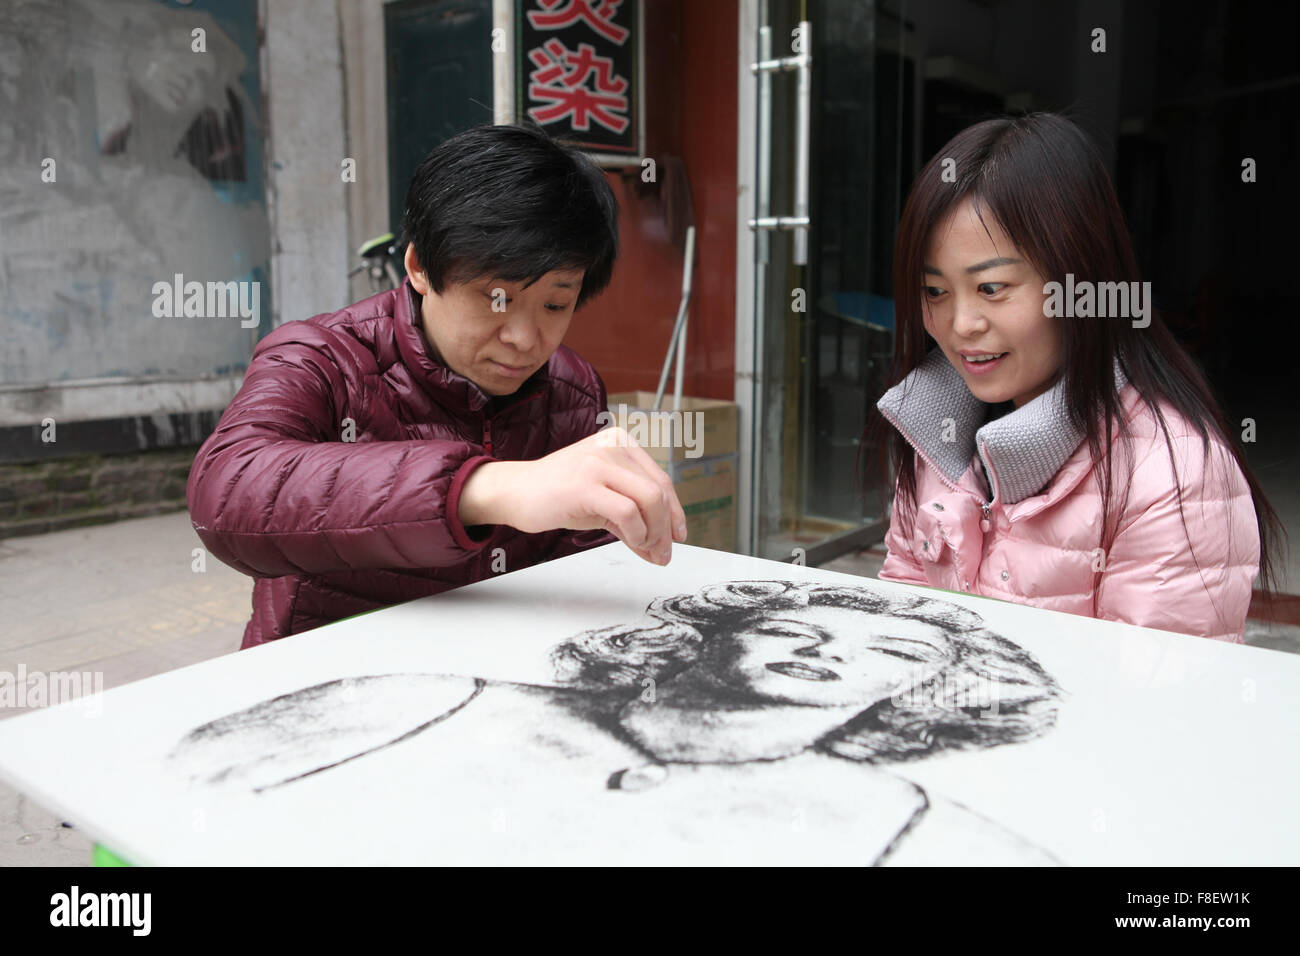 Sanmenxia, China's Henan Province. 9th Dec, 2015. Li Hailiang (L), a 35-year-old barber, draws a picture of - Stock Image